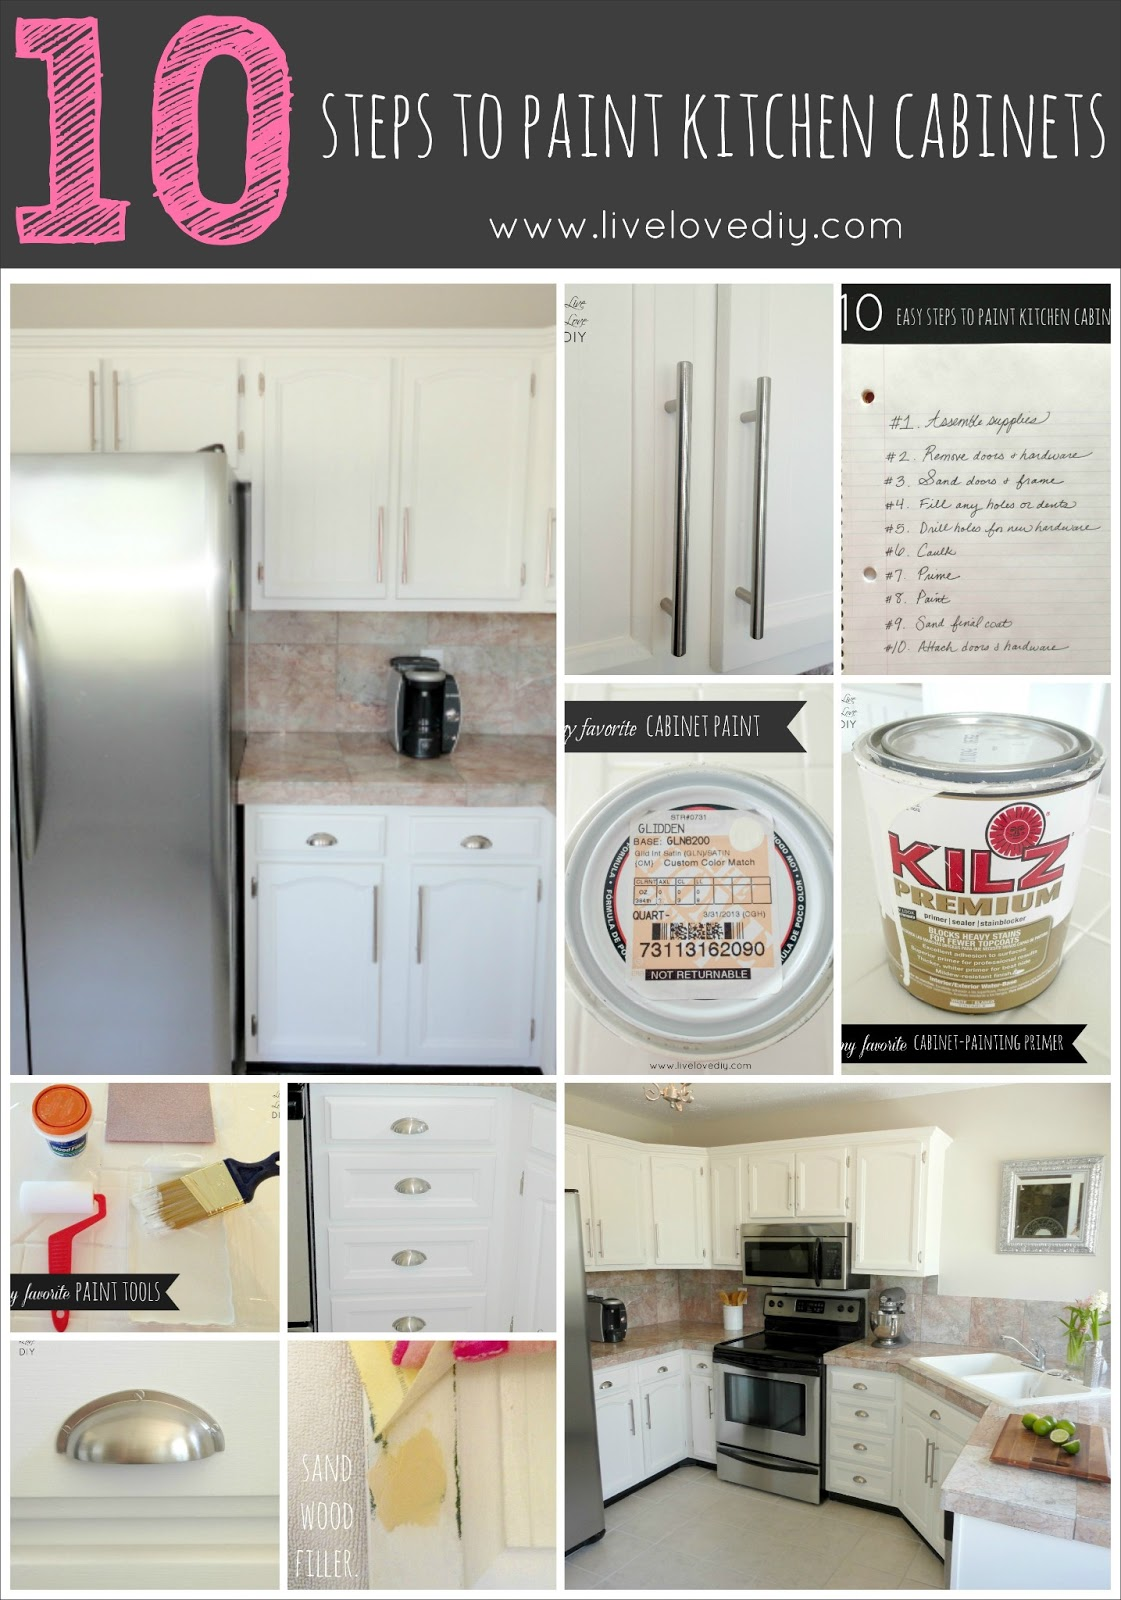 To Paint A Kitchen Livelovediy How To Paint Kitchen Cabinets In 10 Easy Steps